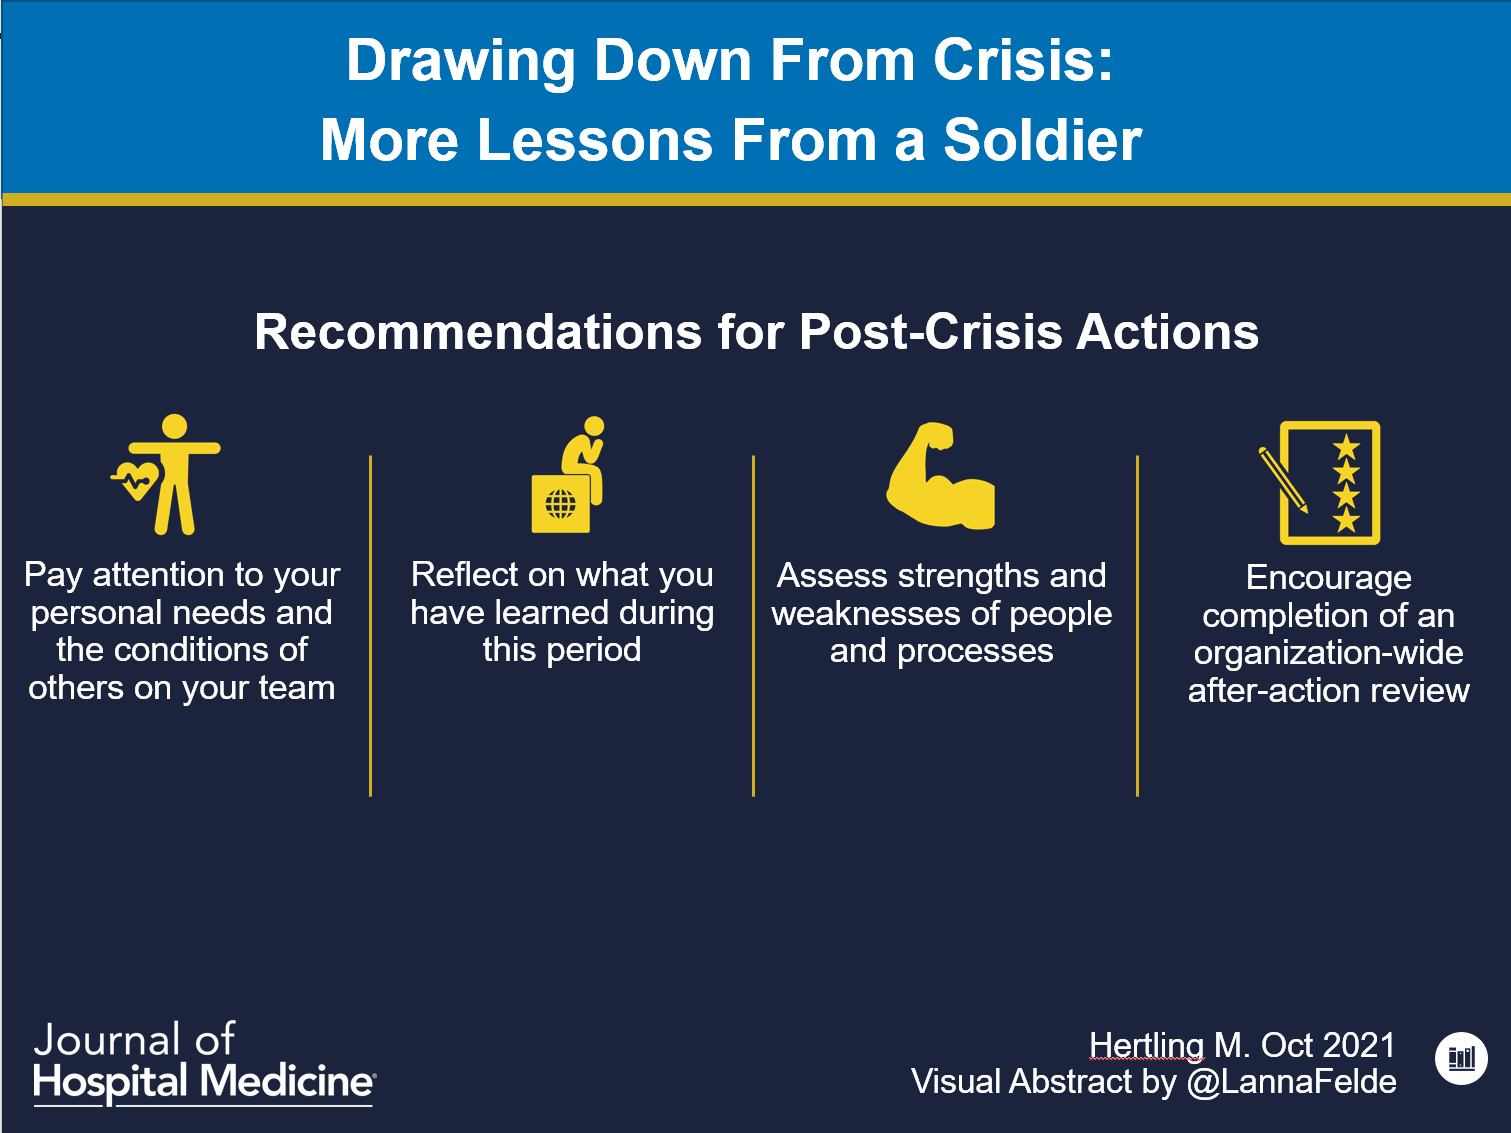 Drawing Down From Crisis: More Lessons From a Soldier